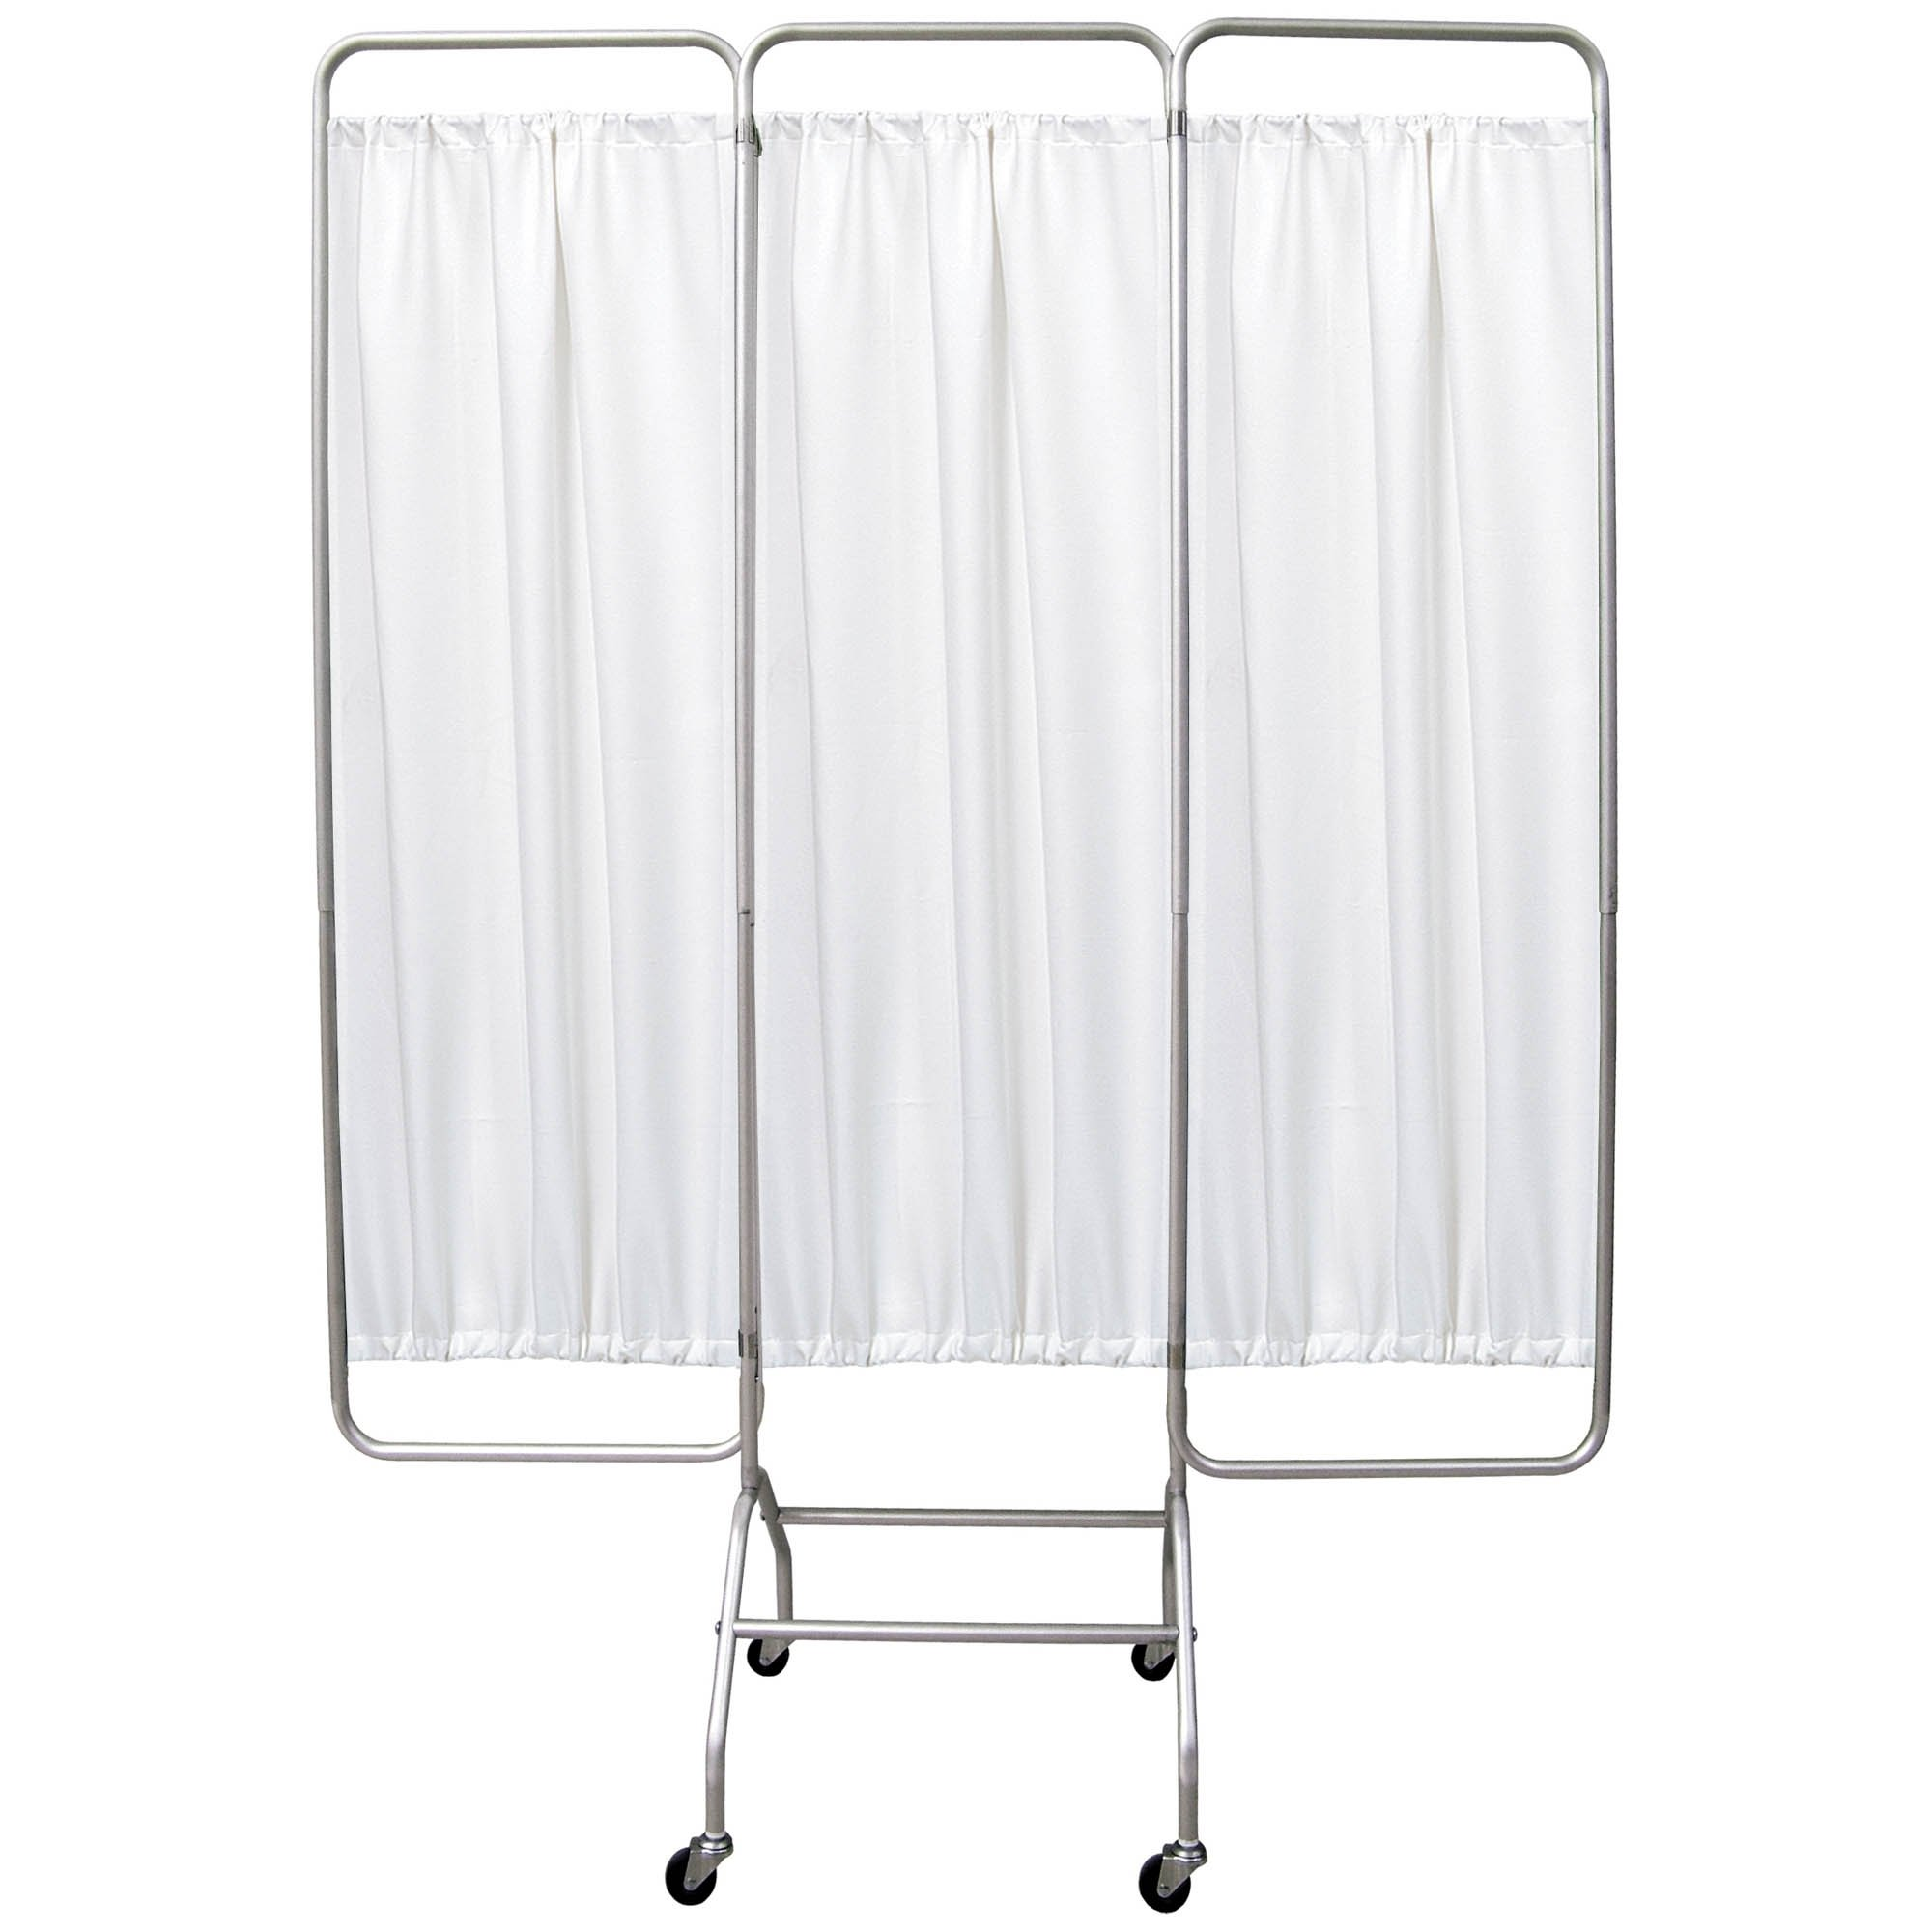 Mobile 3 Section Folding Privacy Screen - White Vinyl Screen Panel